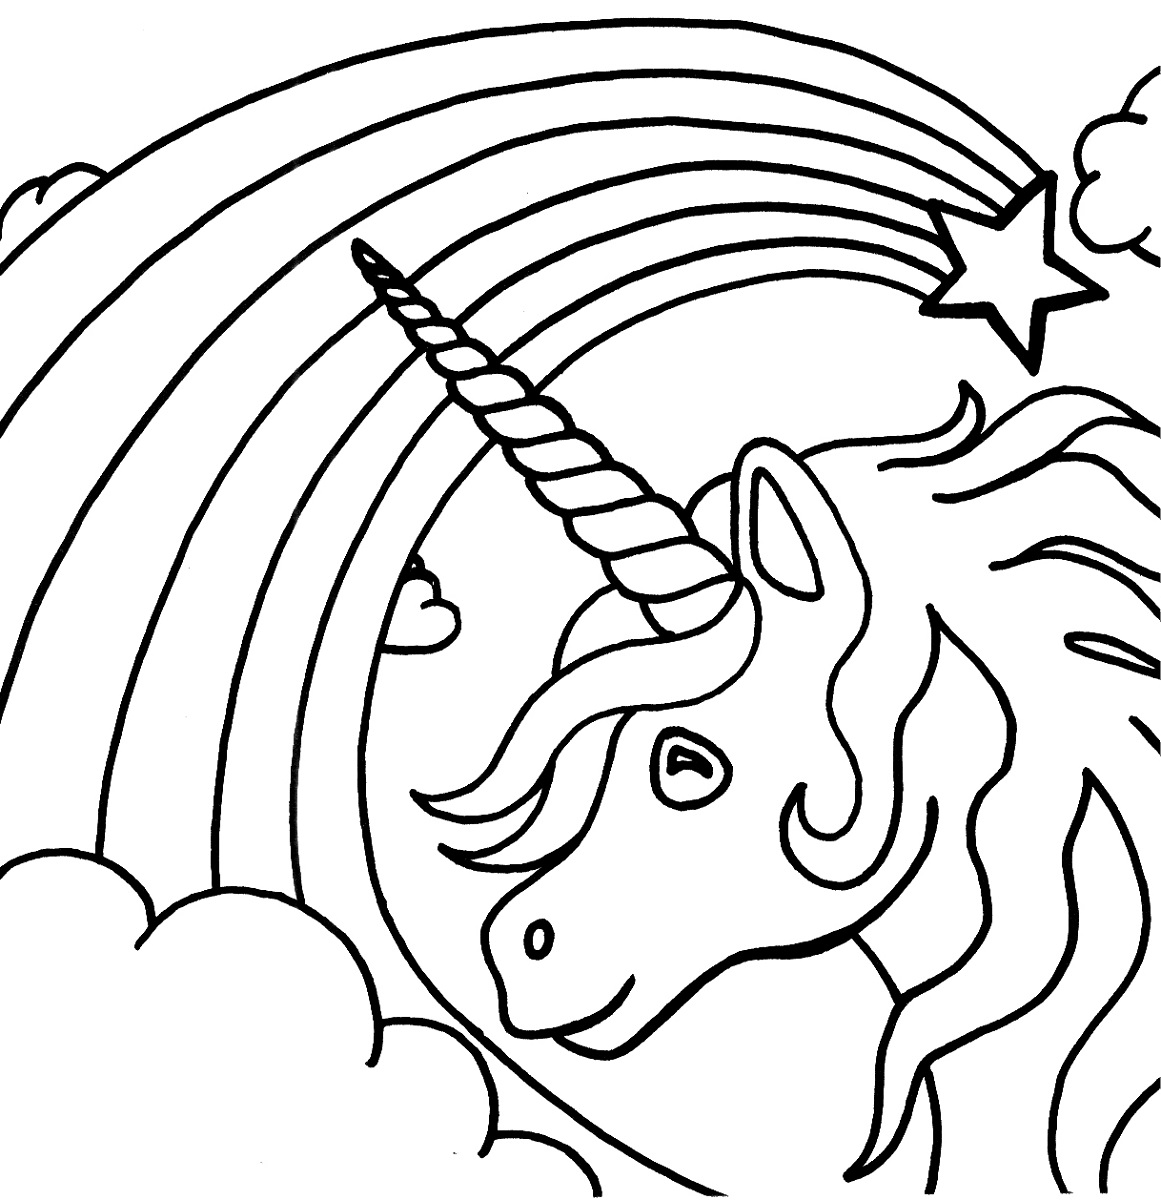 Unicorn Coloring Page Unicorn Color Pages For Kids  Activity Shelter